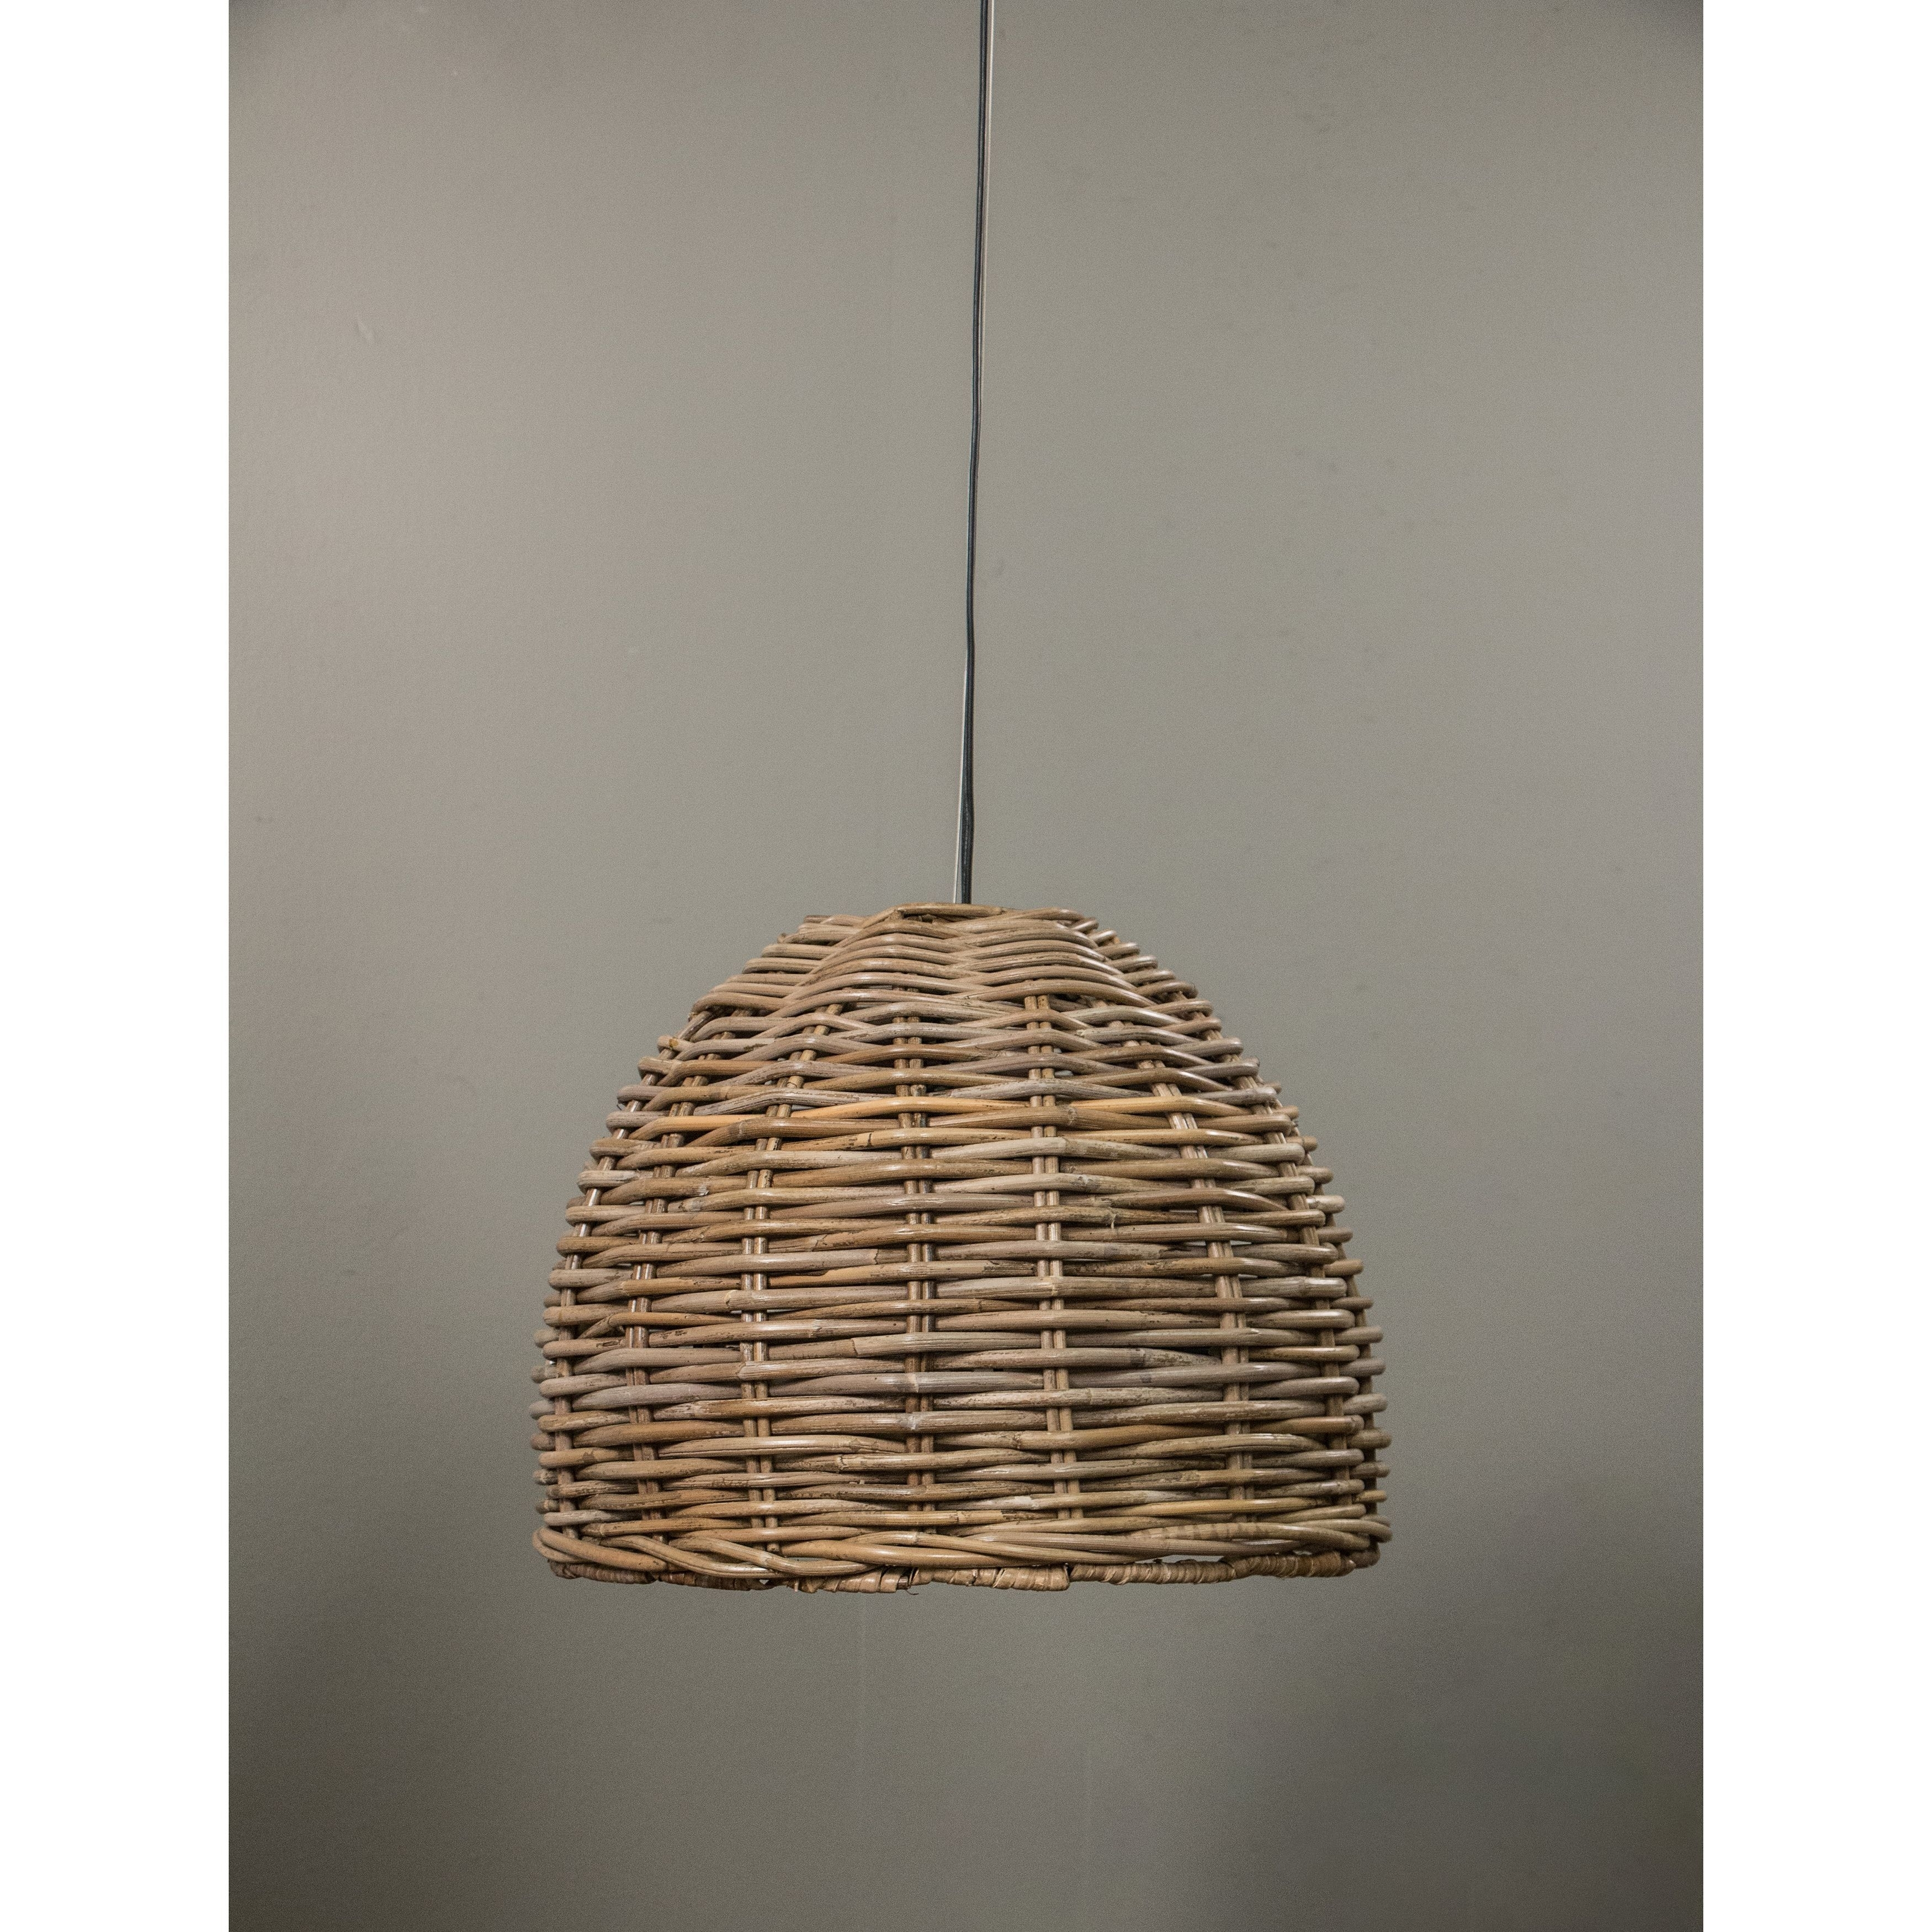 Our Dawson Hanging Lamp Is Made With The Natural Material, Rattan Intended For Outdoor Rattan Hanging Lights (View 13 of 15)